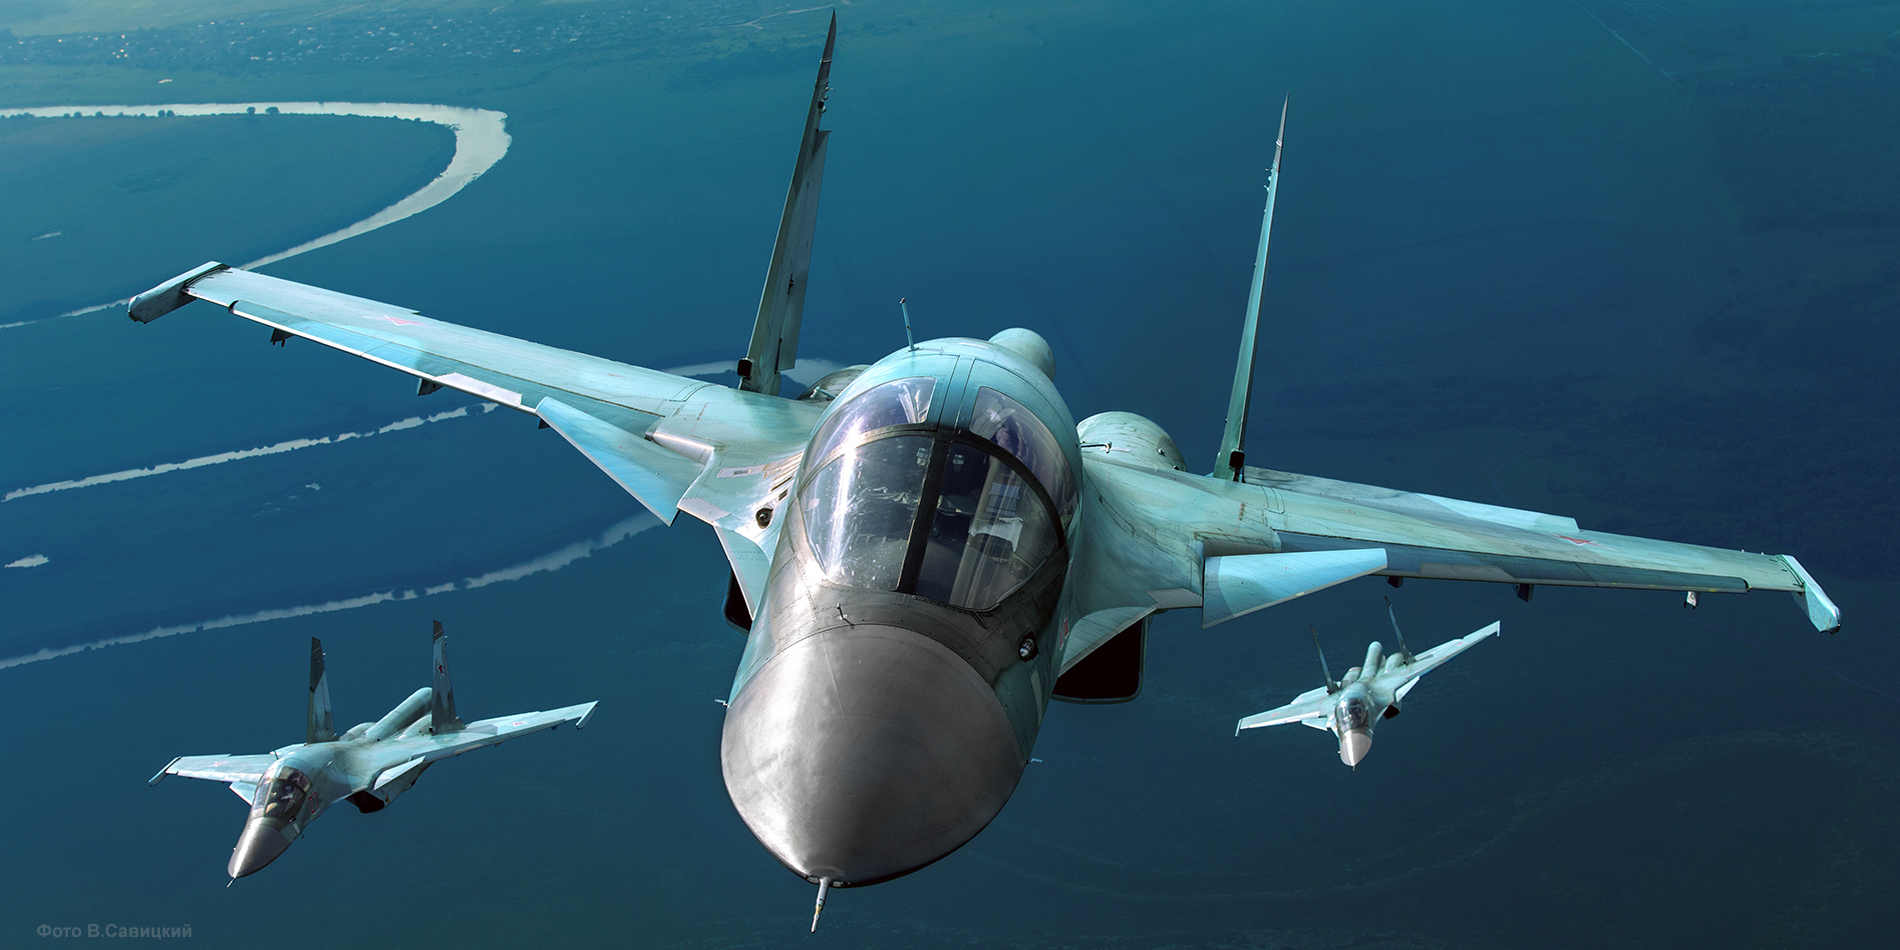 Iran is looking to shore up its air defense capability with Sukhoi jet fighters.